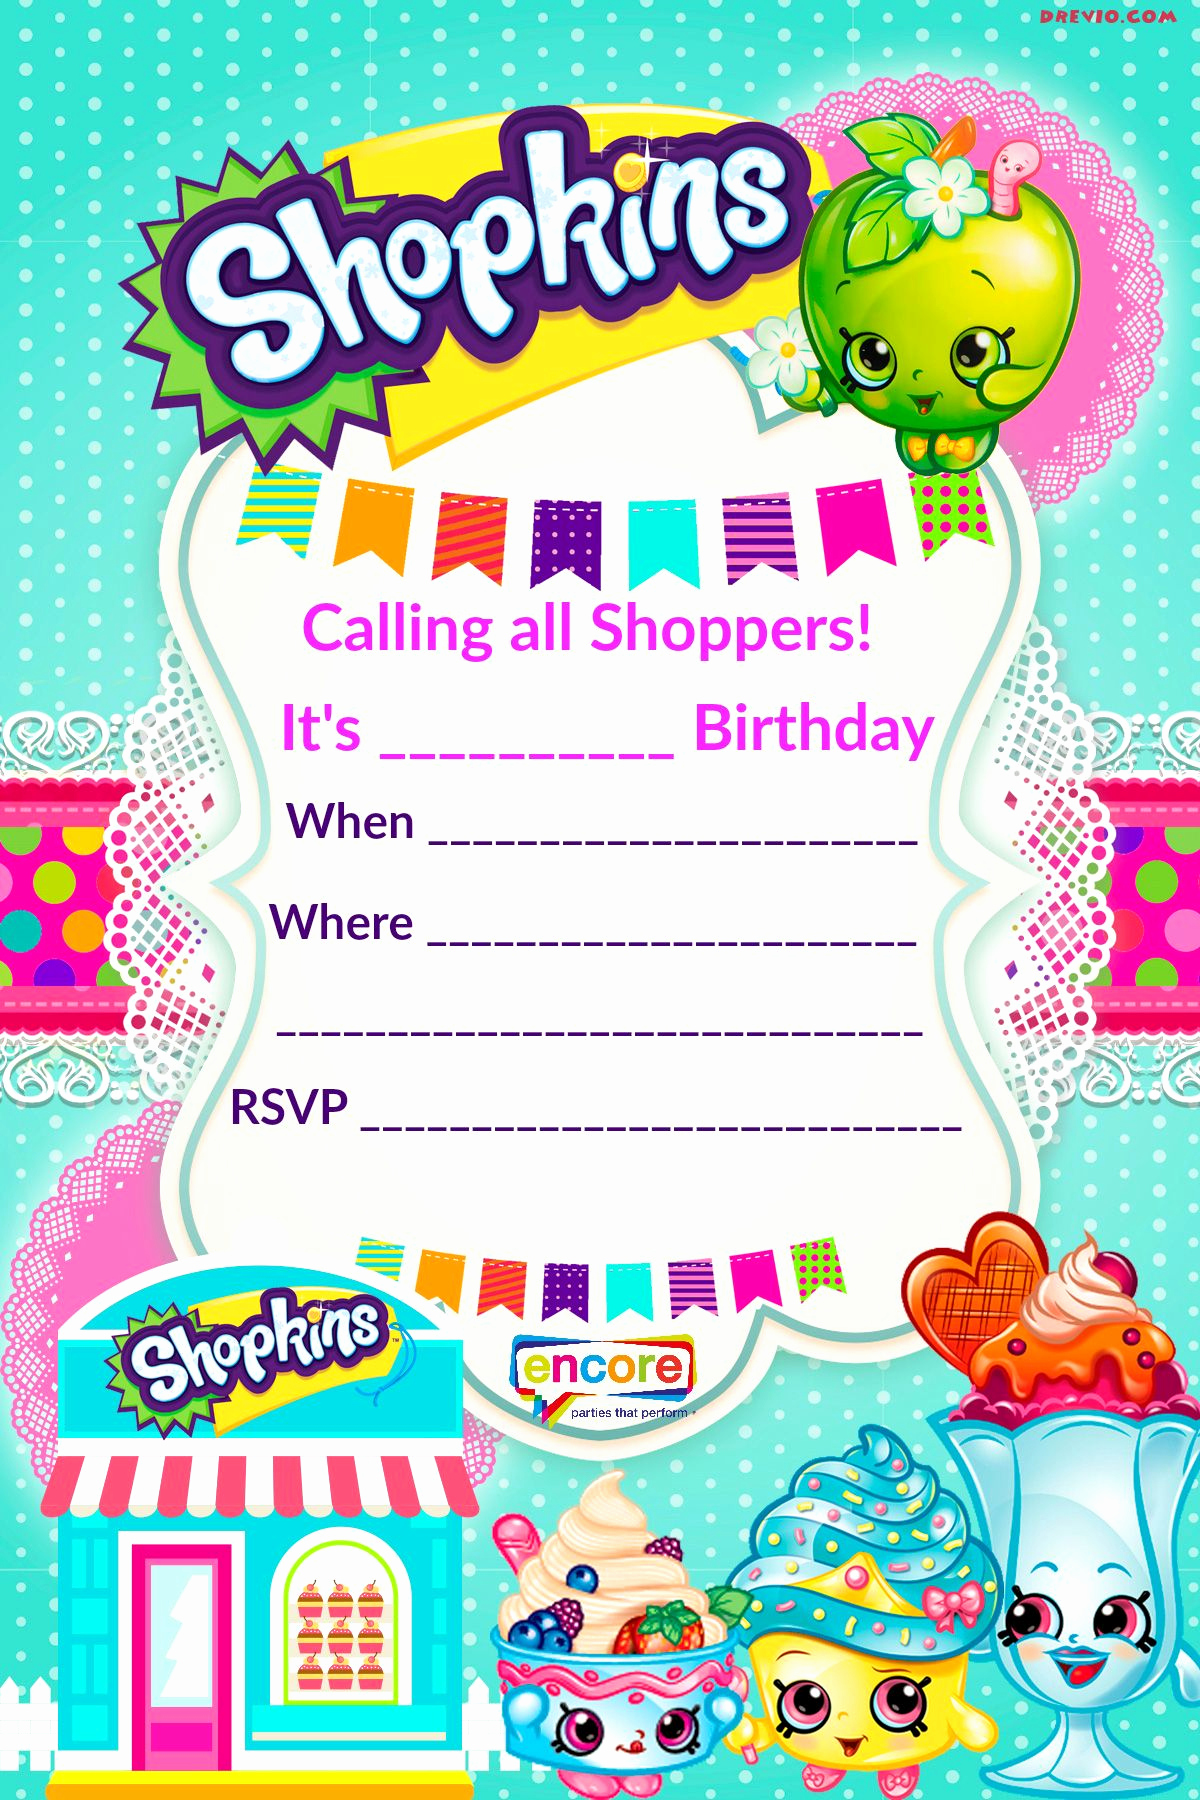 Free Birthday Party Invitation Templates Awesome Updated Free Printable Shopkins Birthday Invitation